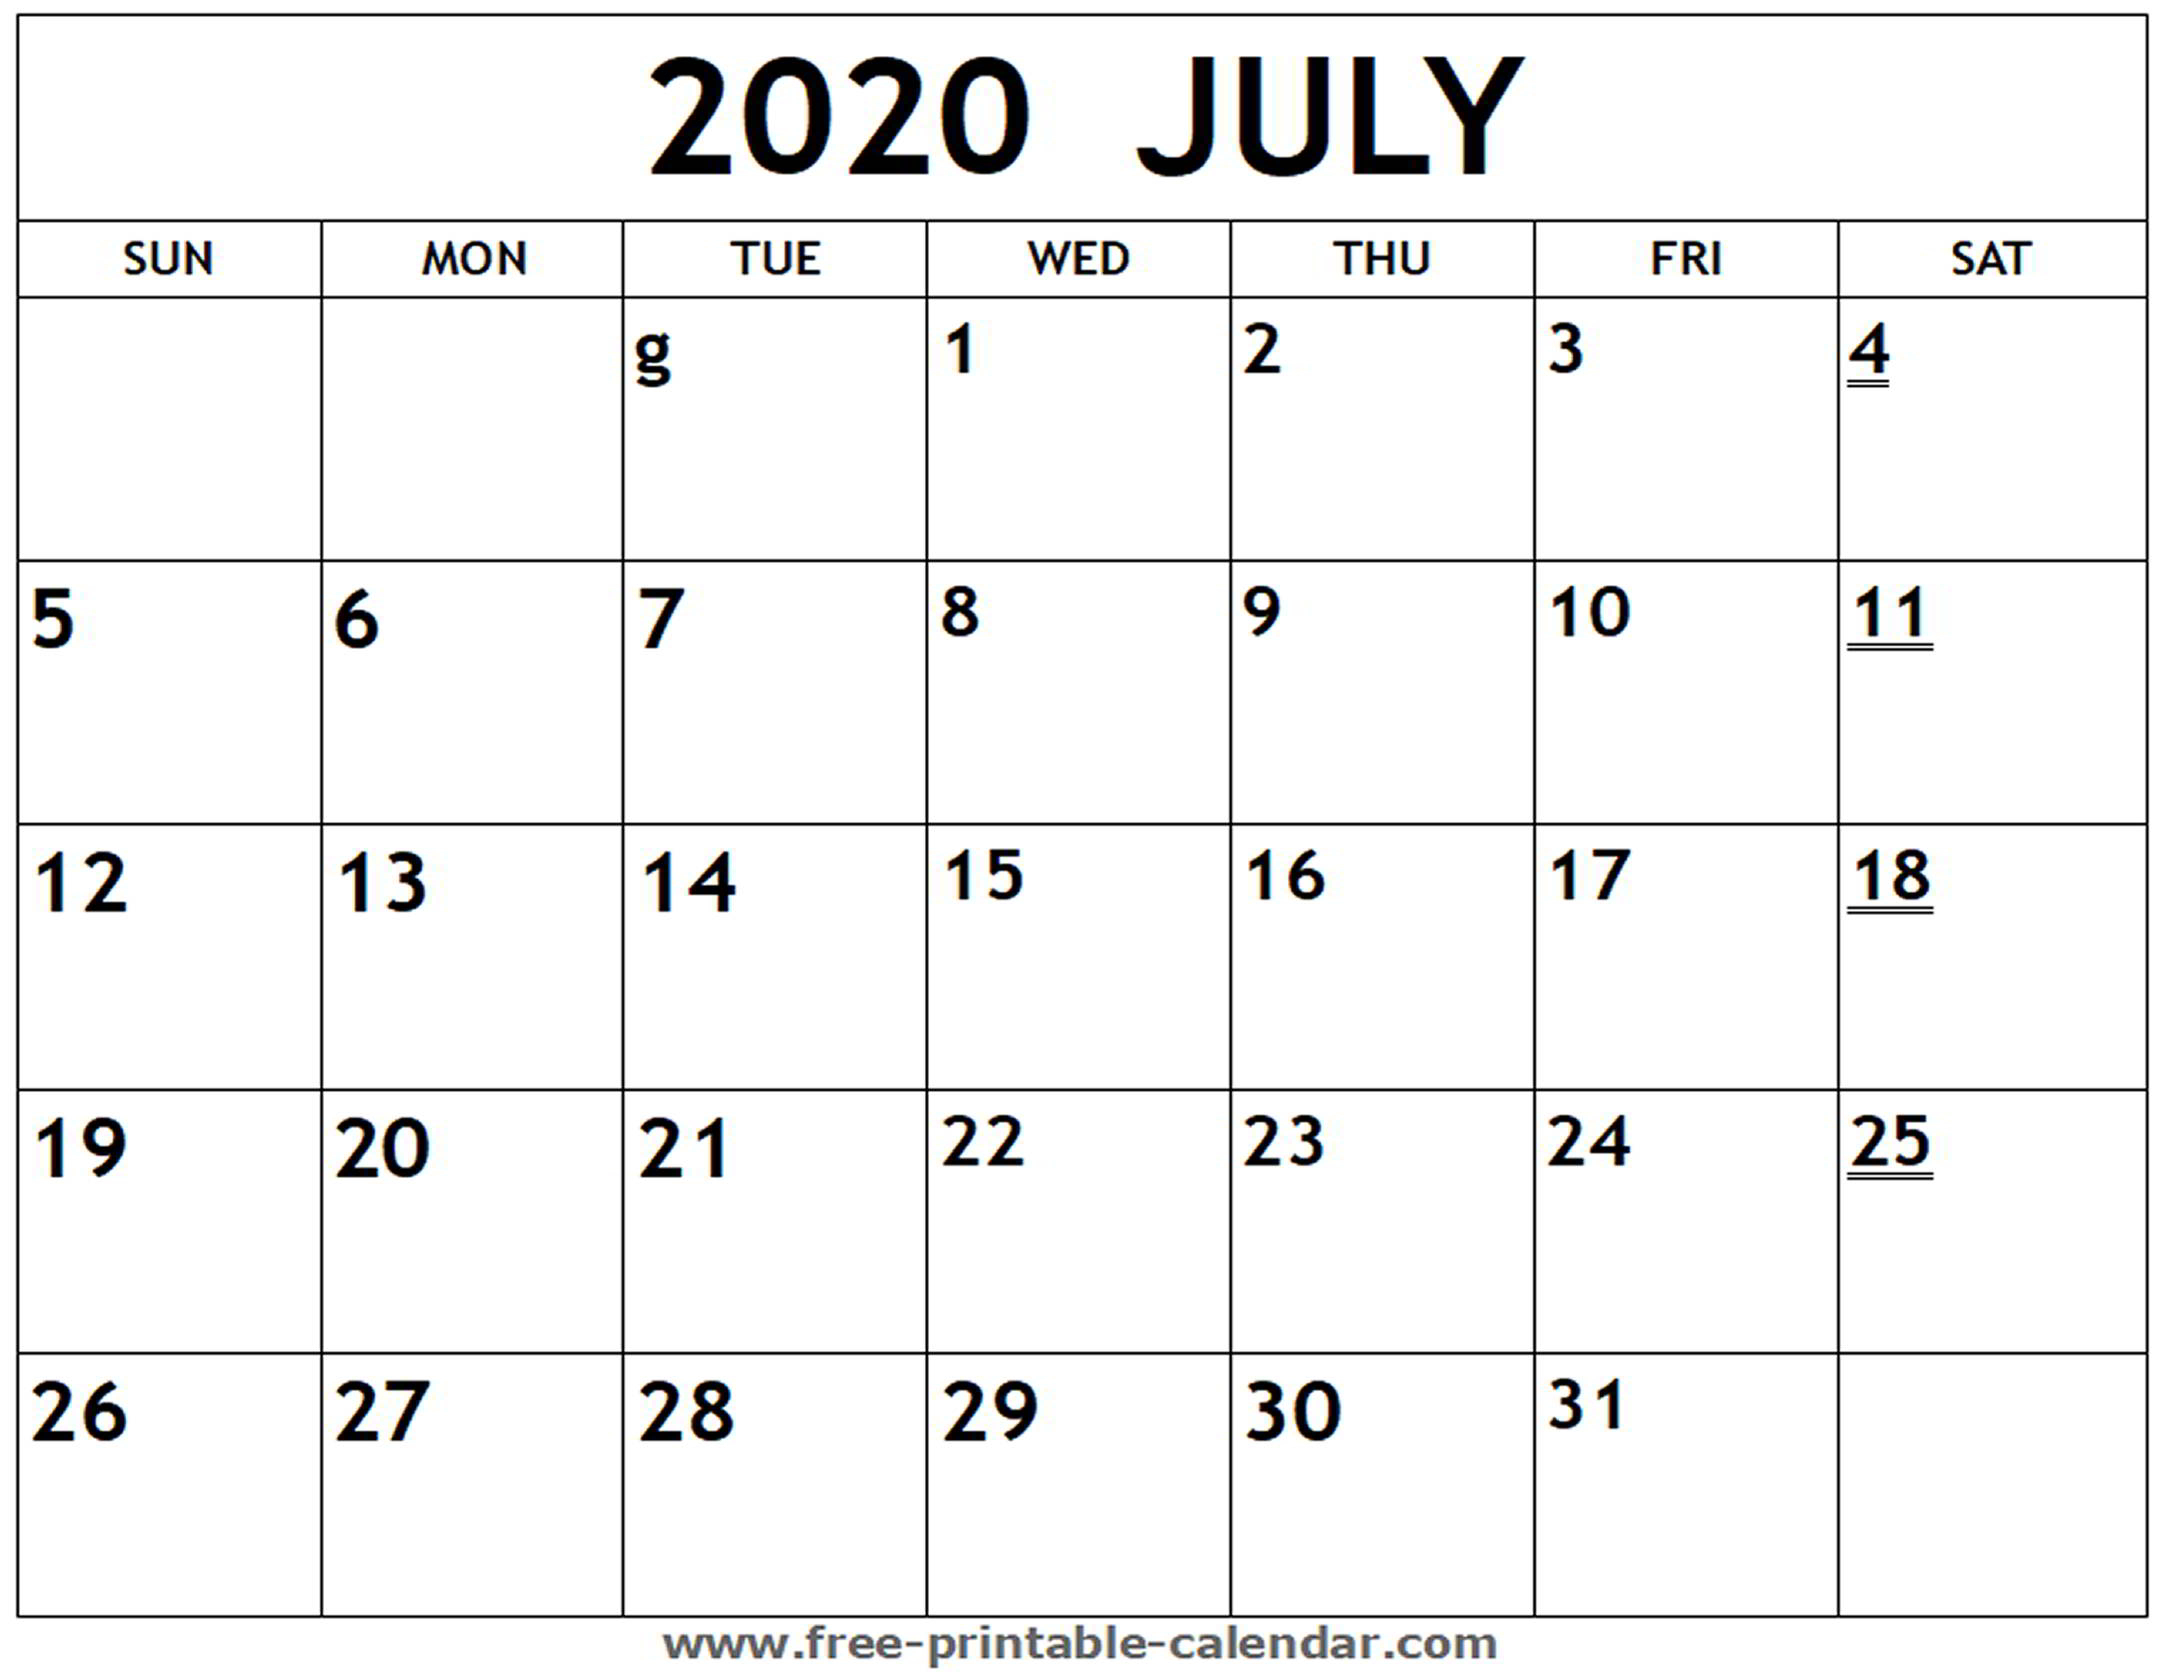 Printable 2020 July Calendar  Freeprintablecalendar within Printable June 2020 Calendar